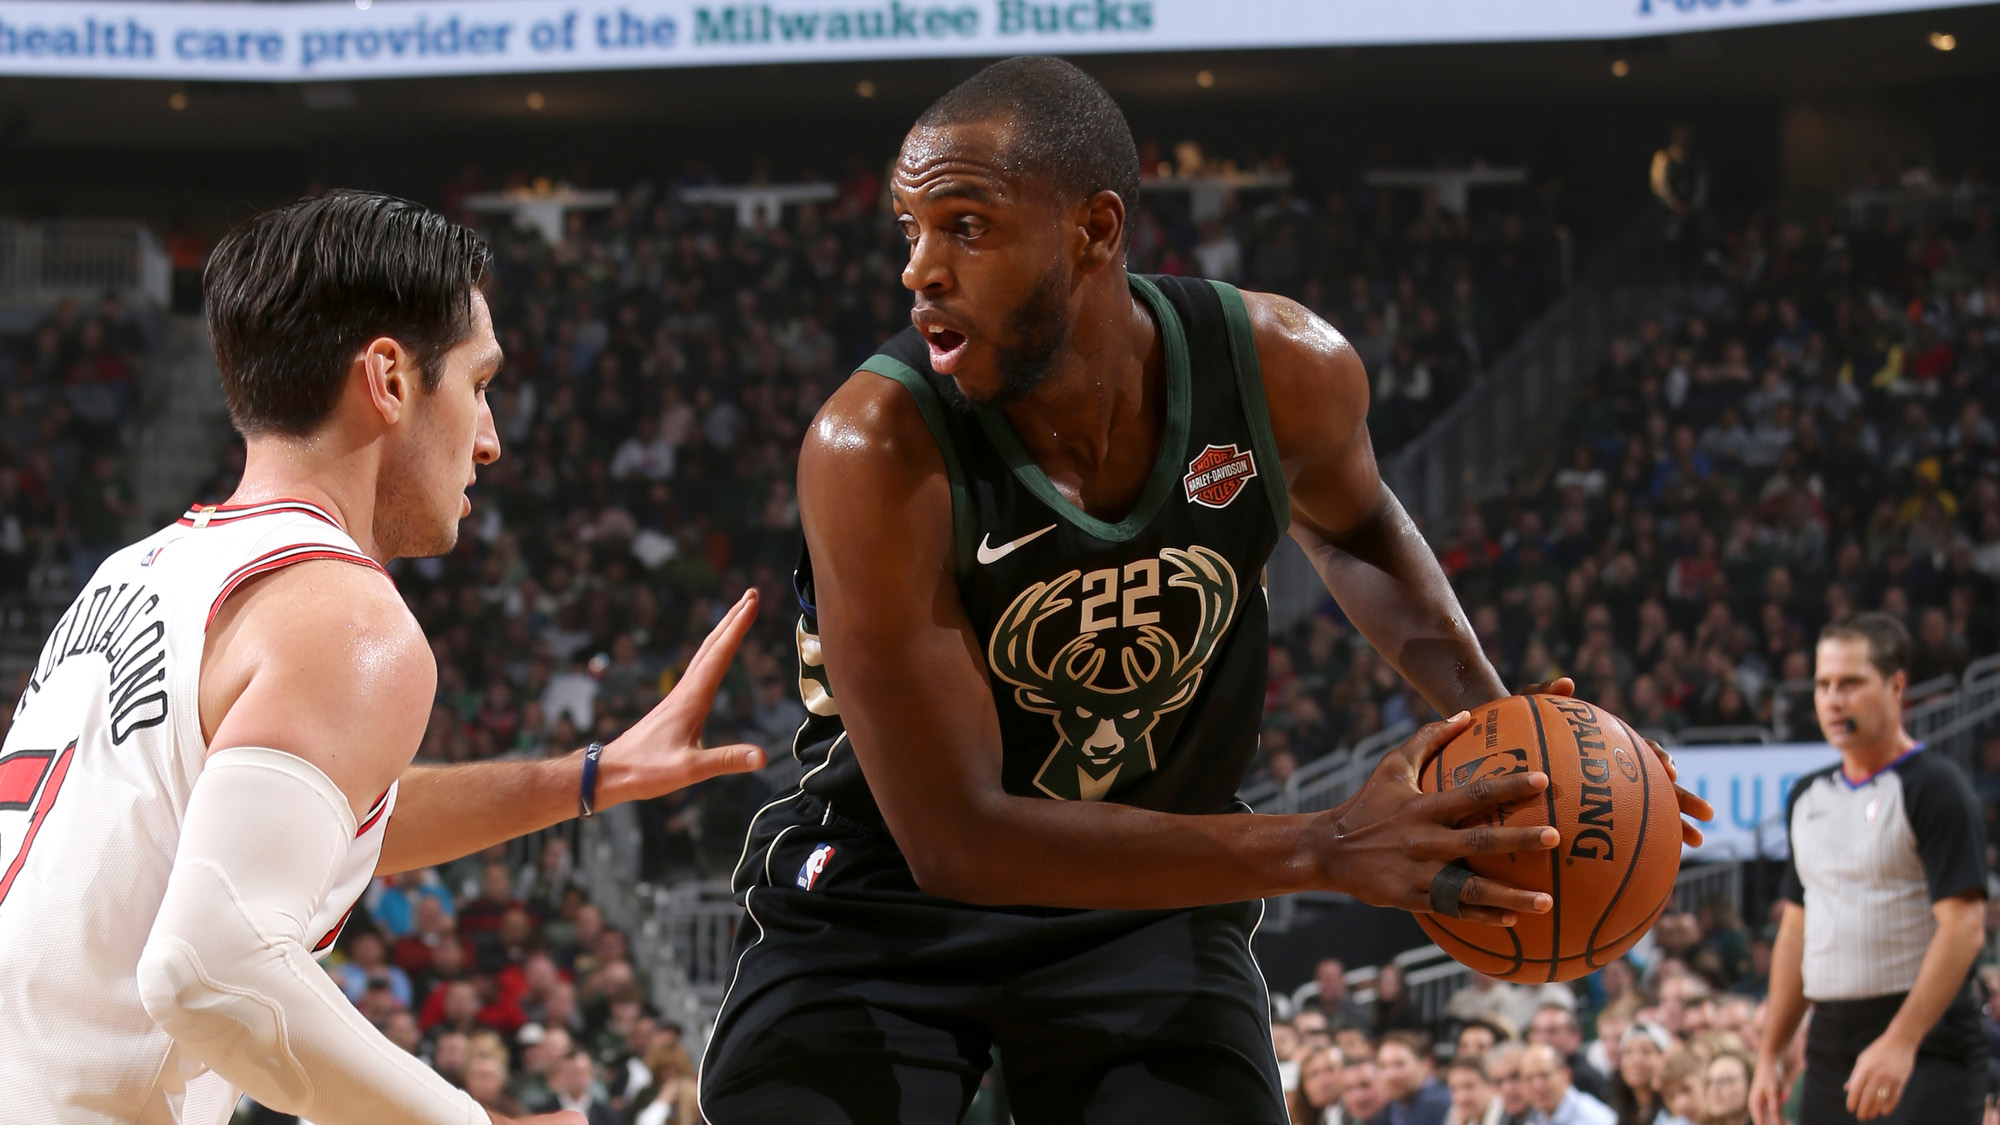 GAME RECAP: Bucks 123, Bulls 104